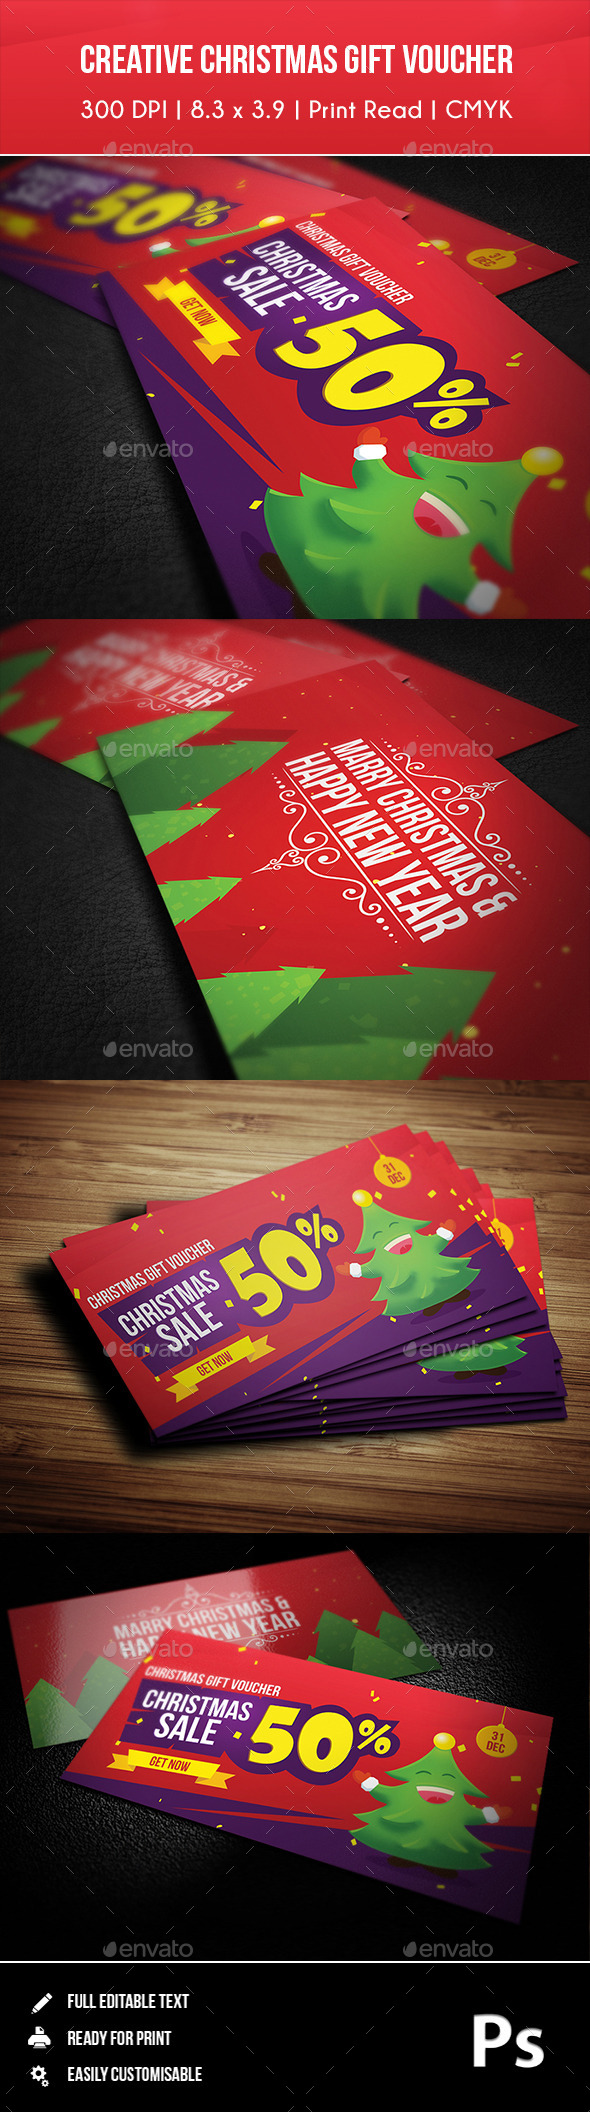 Creative Christmas Gift Voucher 01 - Cards & Invites Print Templates